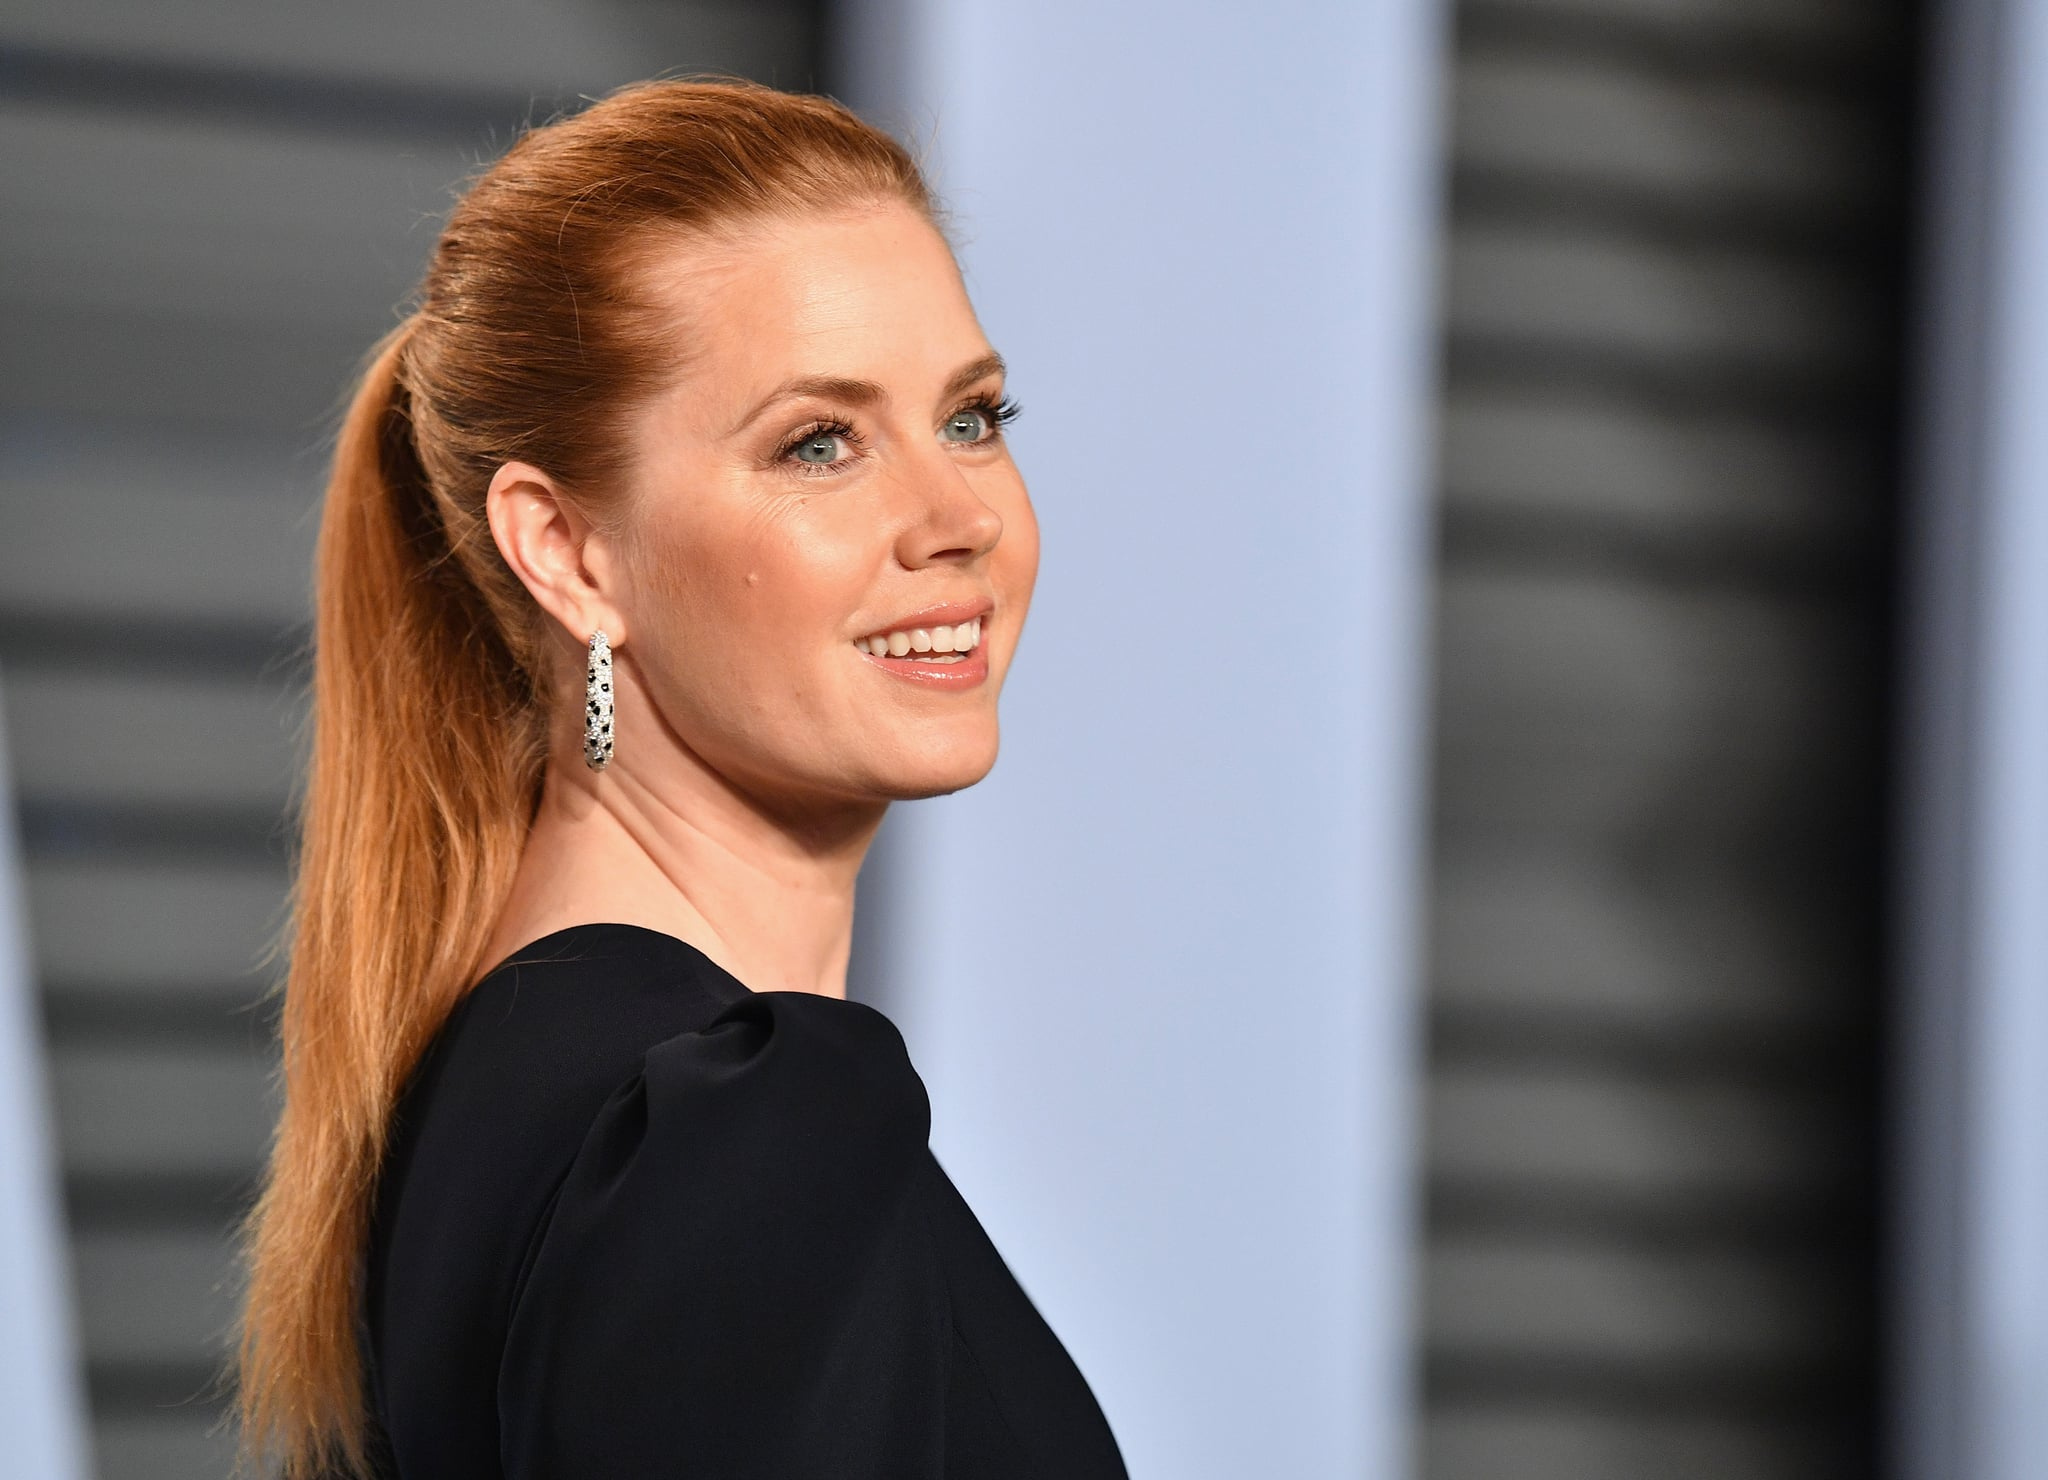 BEVERLY HILLS, CA - MARCH 04:  Amy Adams attends the 2018 Vanity Fair Oscar Party hosted by Radhika Jones at Wallis Annenberg Center for the Performing Arts on March 4, 2018 in Beverly Hills, California.  (Photo by Dia Dipasupil/Getty Images)